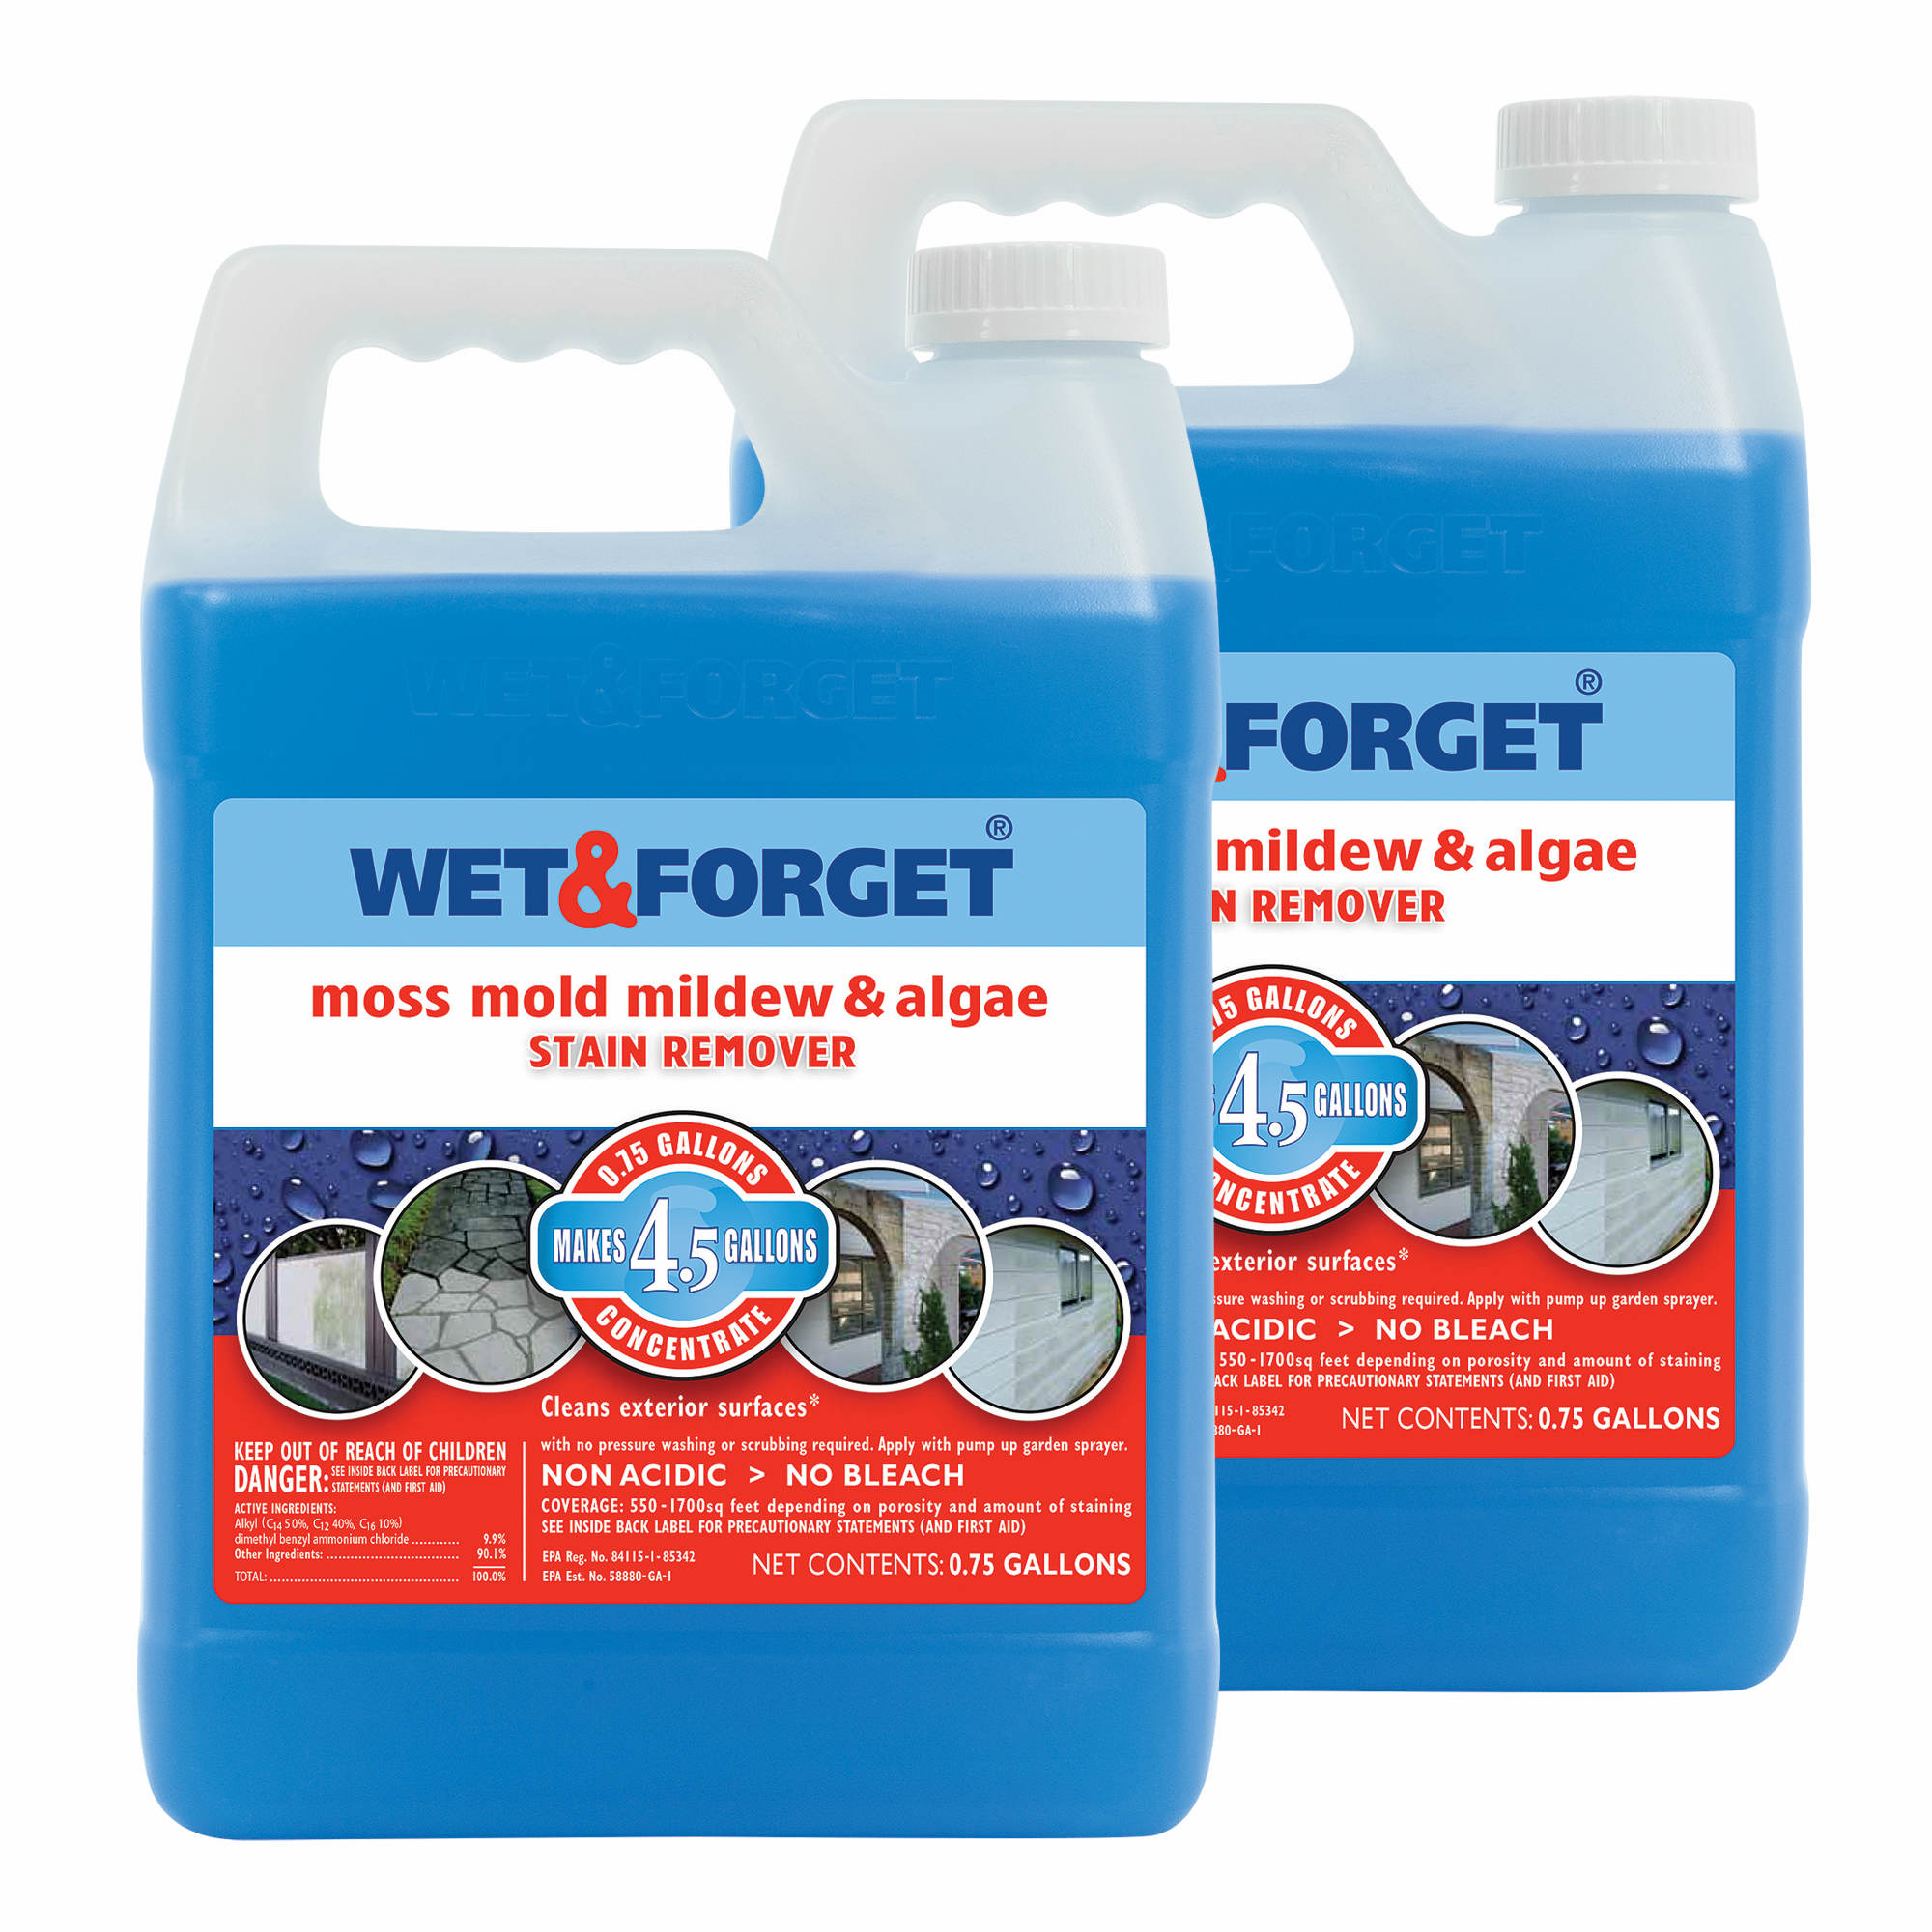 Wet Amp Forget Moss Mold Mildew Amp Algae Stain Remover 2